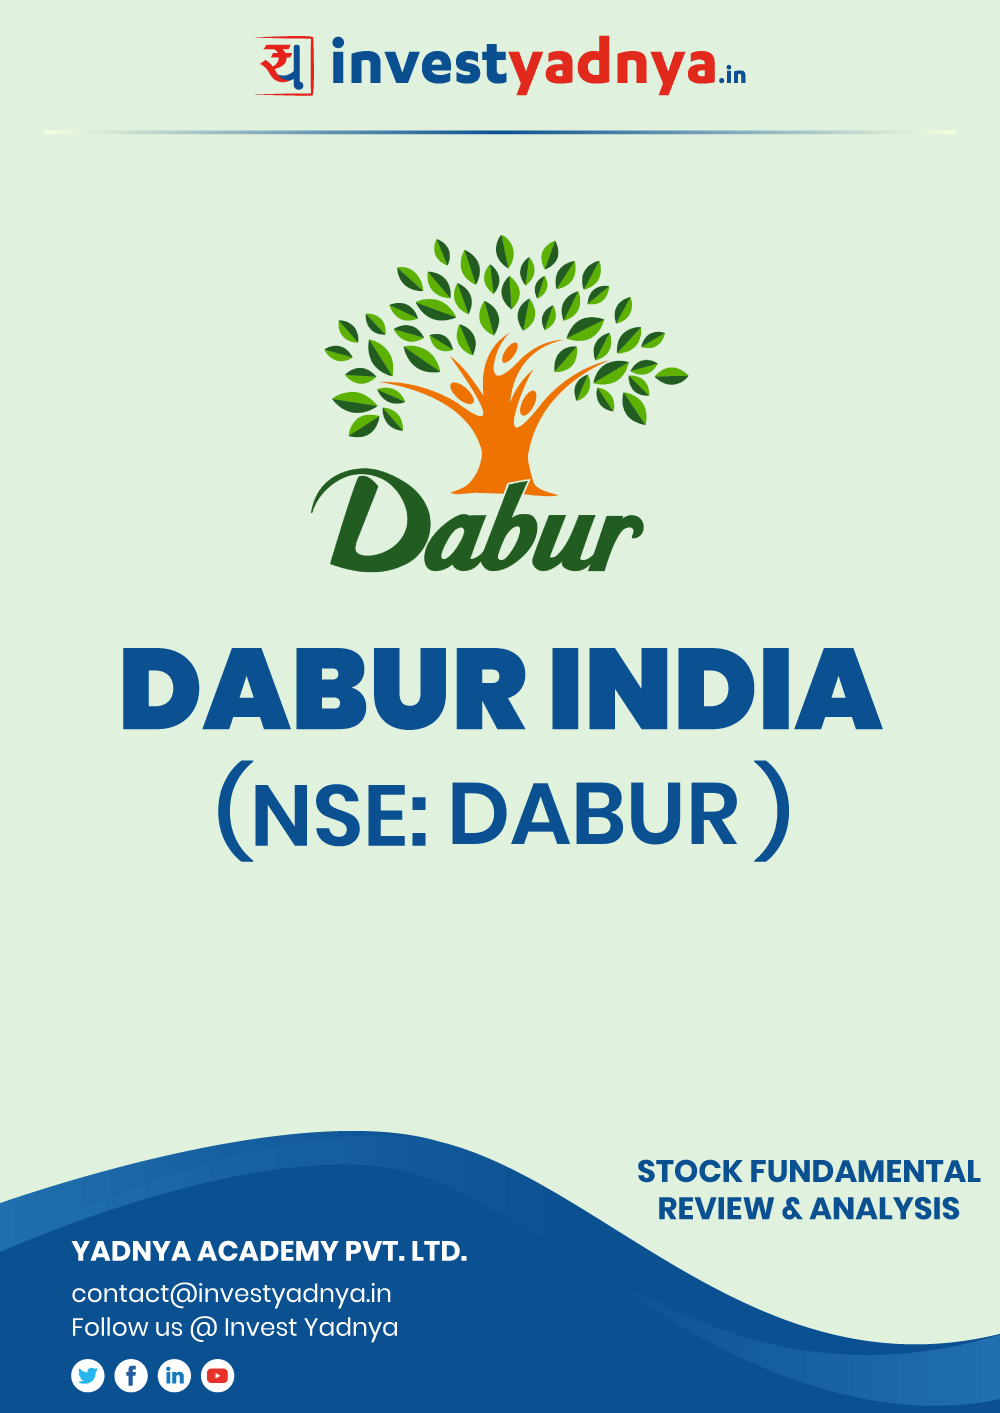 This e-book contains in-depth fundamental analysis of Dabur India Ltd. considering both Financial and Equity Research Parameters. It reviews the company, industry, competitors, shareholding pattern, financials, governance and annual performance. ✔ Detailed Research ✔ Quality Reports